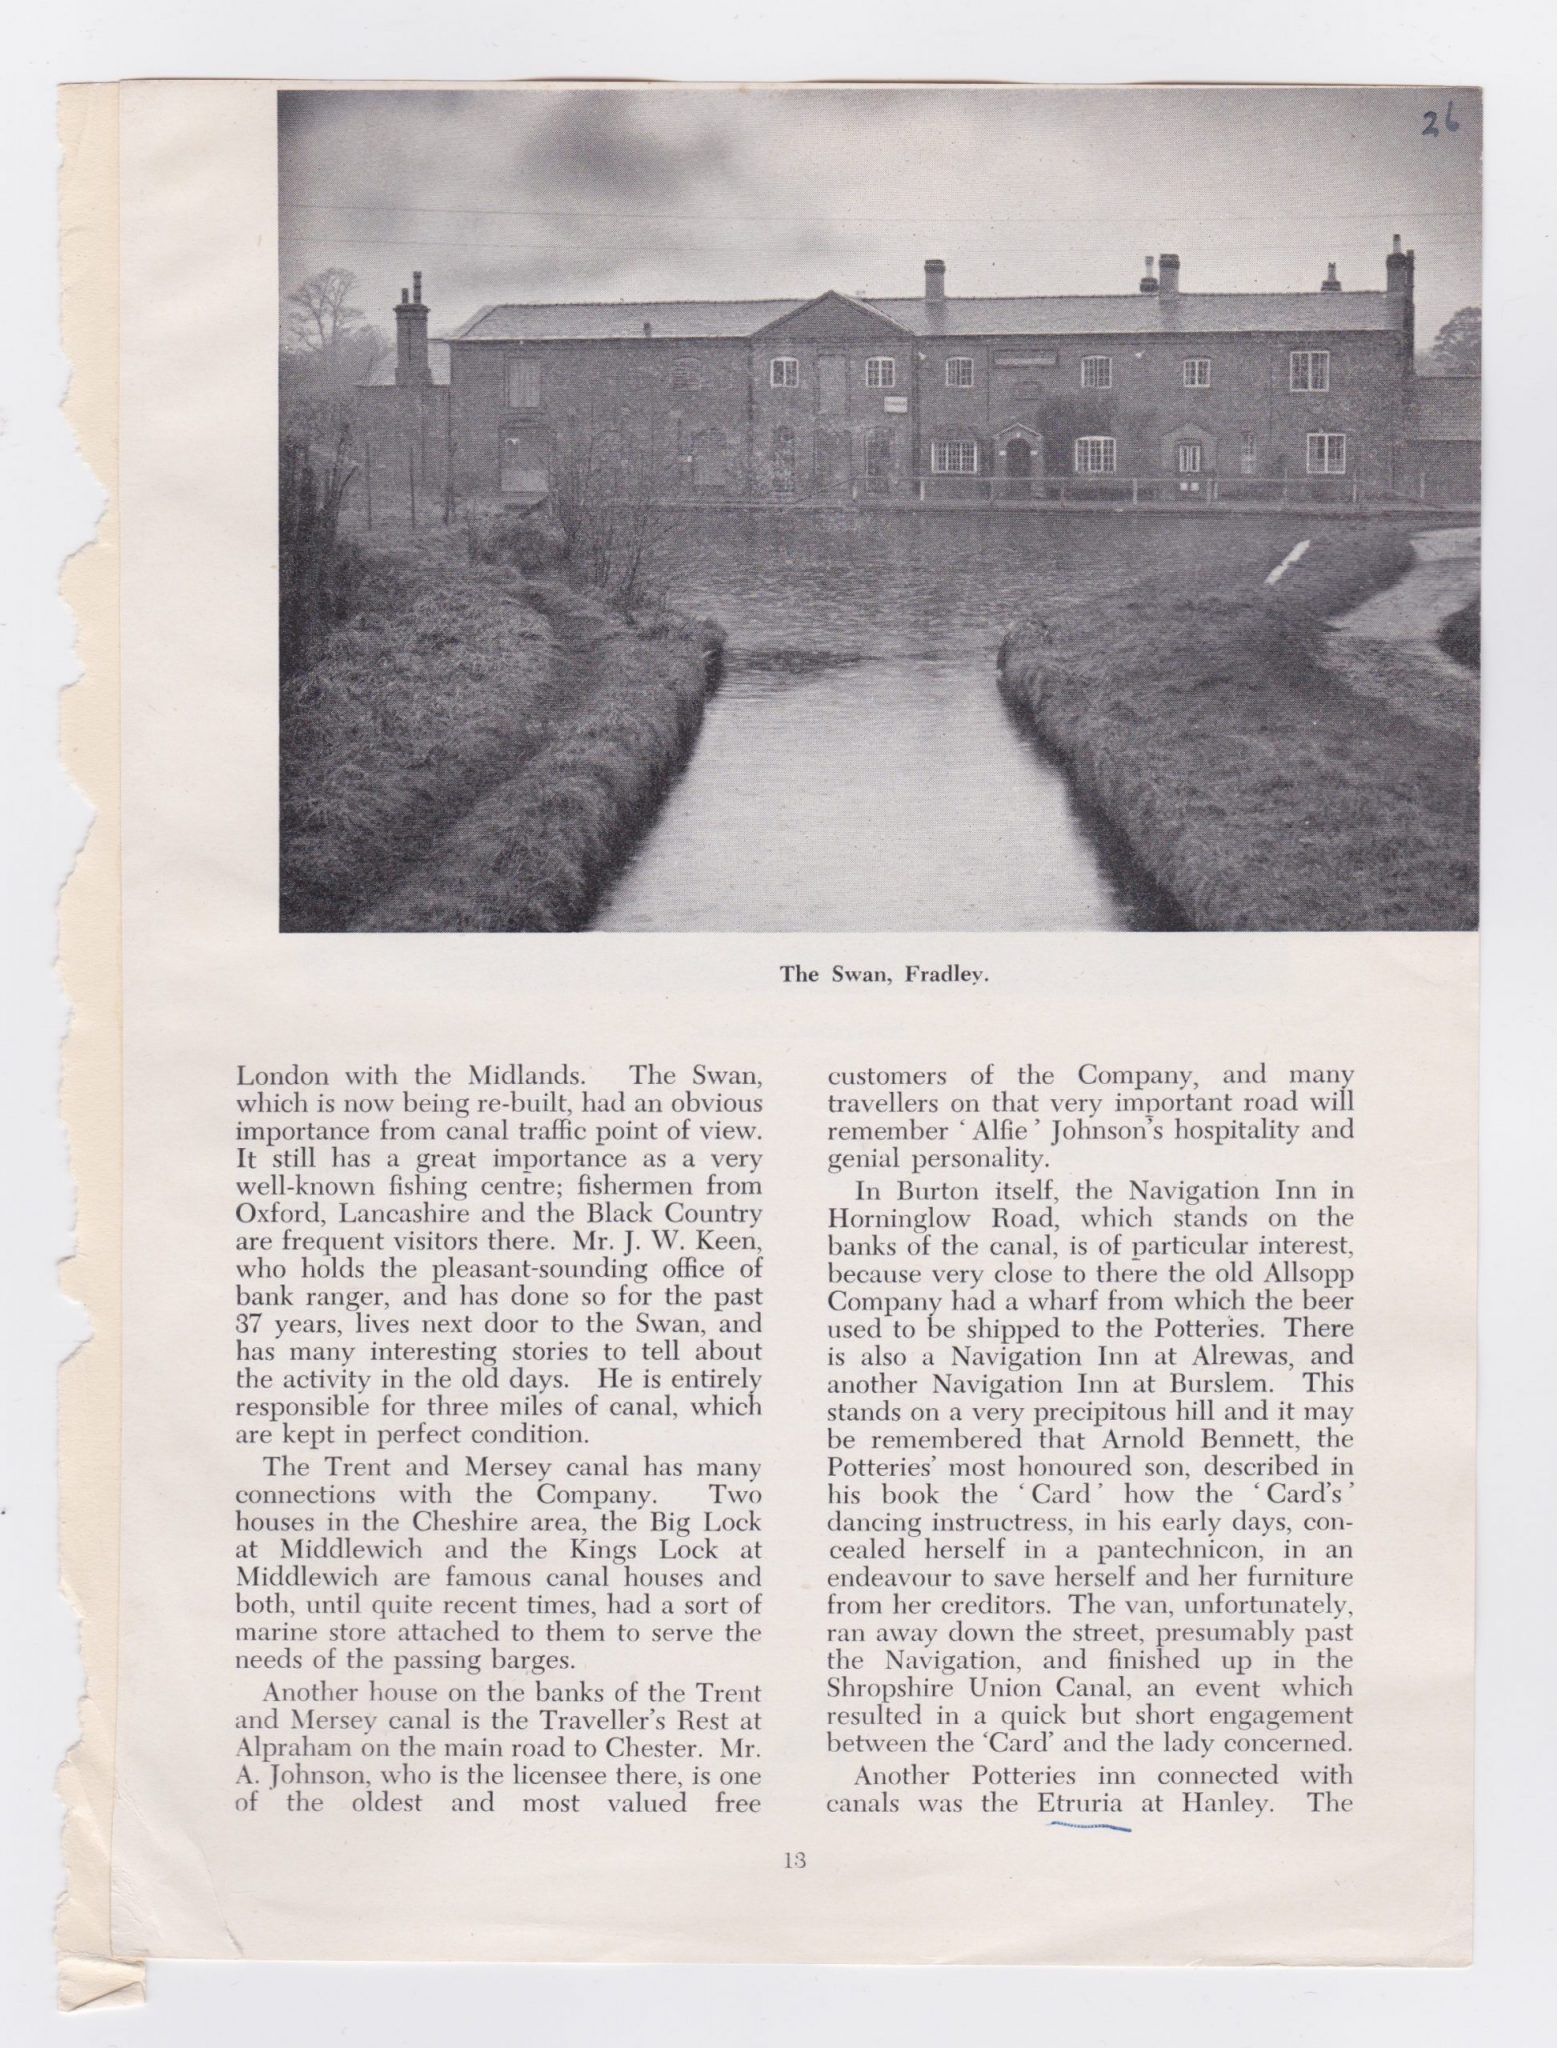 continuation of the article on Canal inns featuring The Swah at Fradley